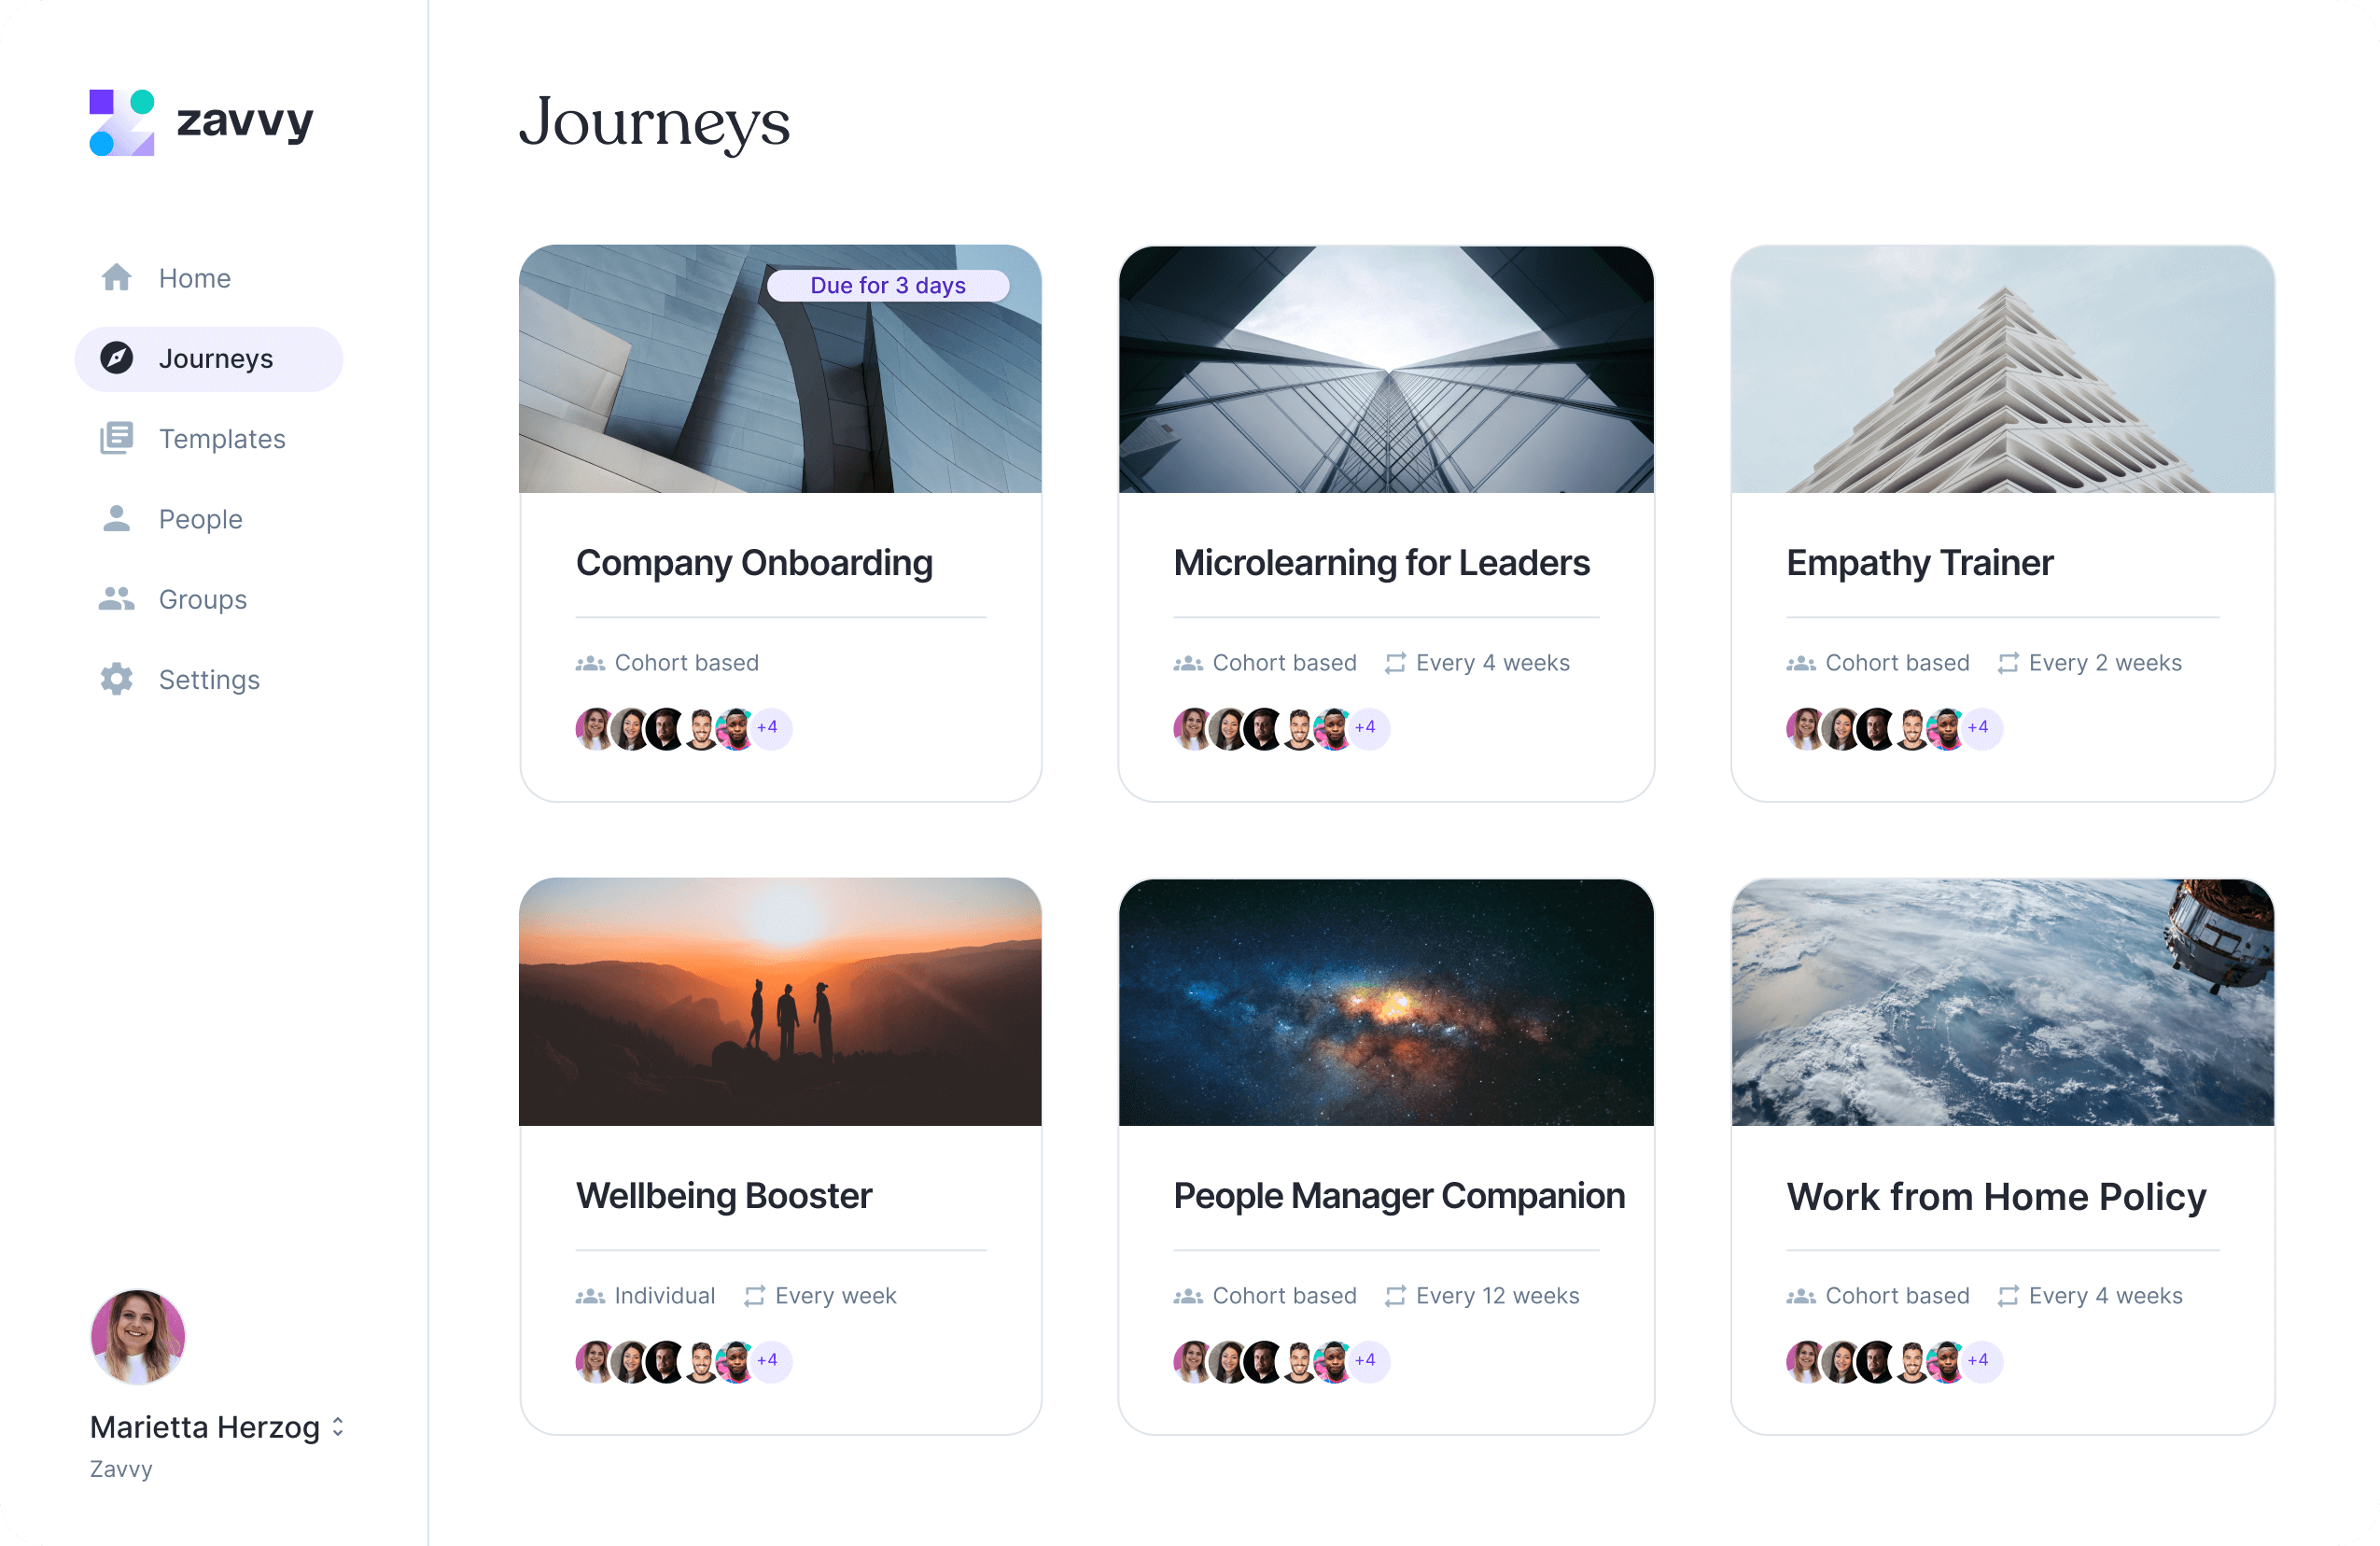 Zavvy is a training platform for companies and employees. This screen shows a view of the library containing templates for initaitives like developer onboarding, lunch walks, or resilience.